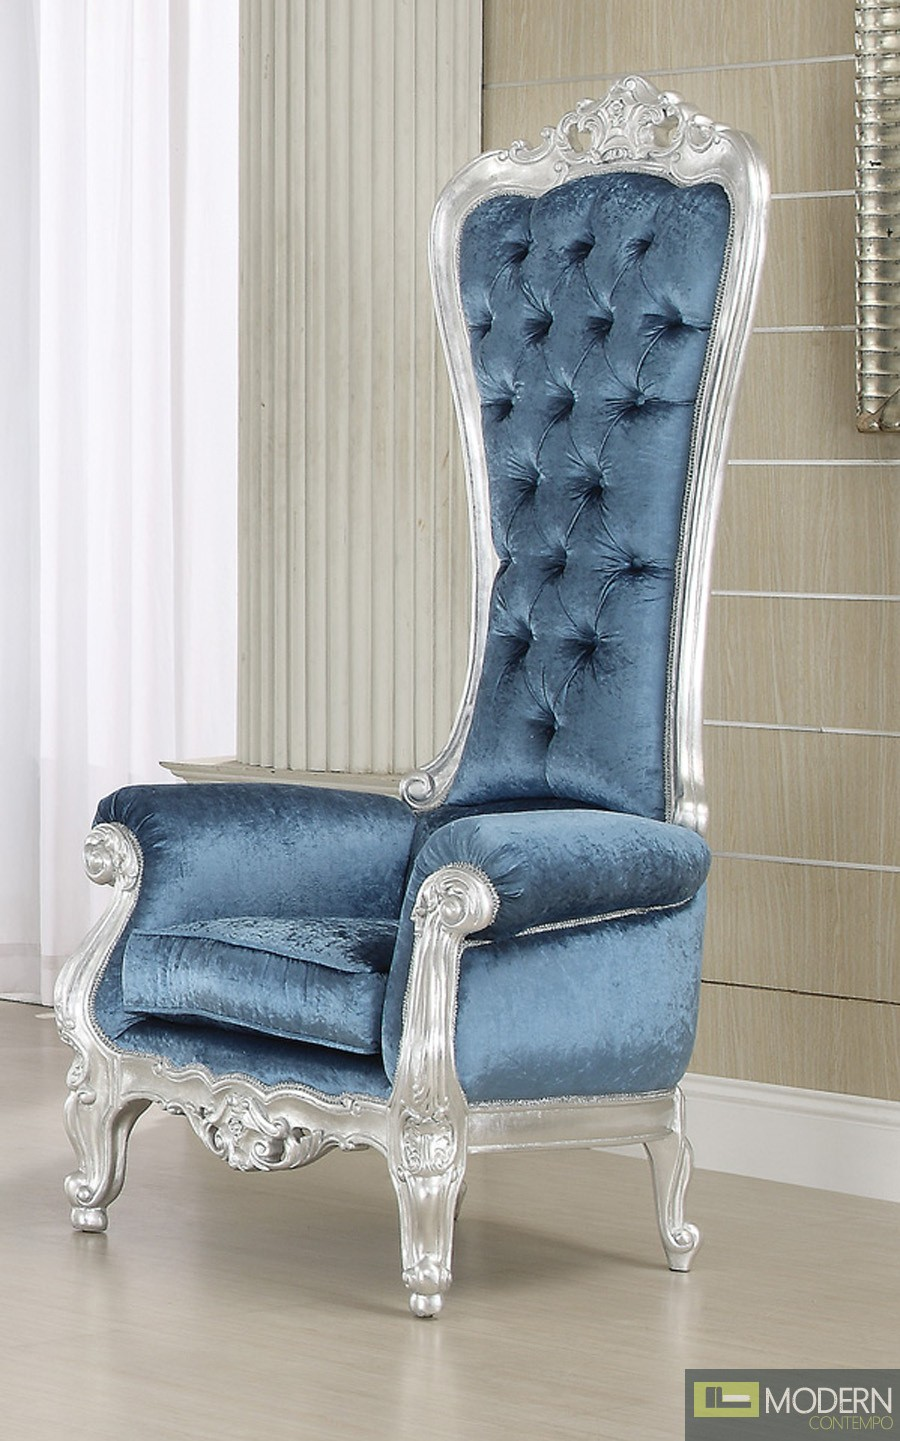 More Views & Neo Classic Baroque Extreme High-Back ROYAL Throne Accent ArmChair ...